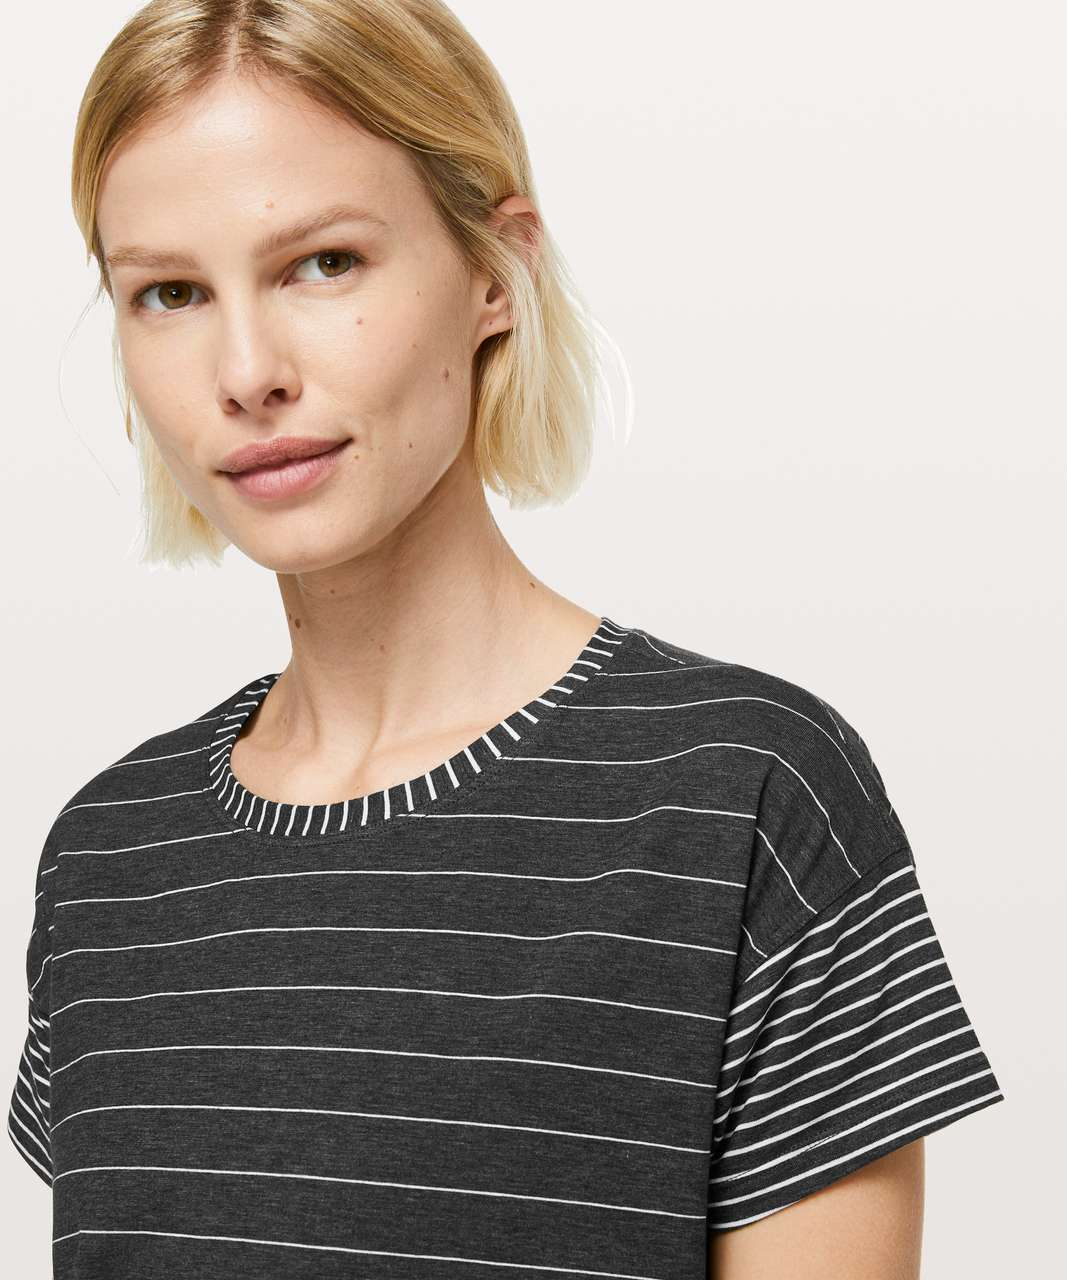 Lululemon Cates Tee - Short Serve Stripe Heathered Black White / Modern Stripe Heathered Black White